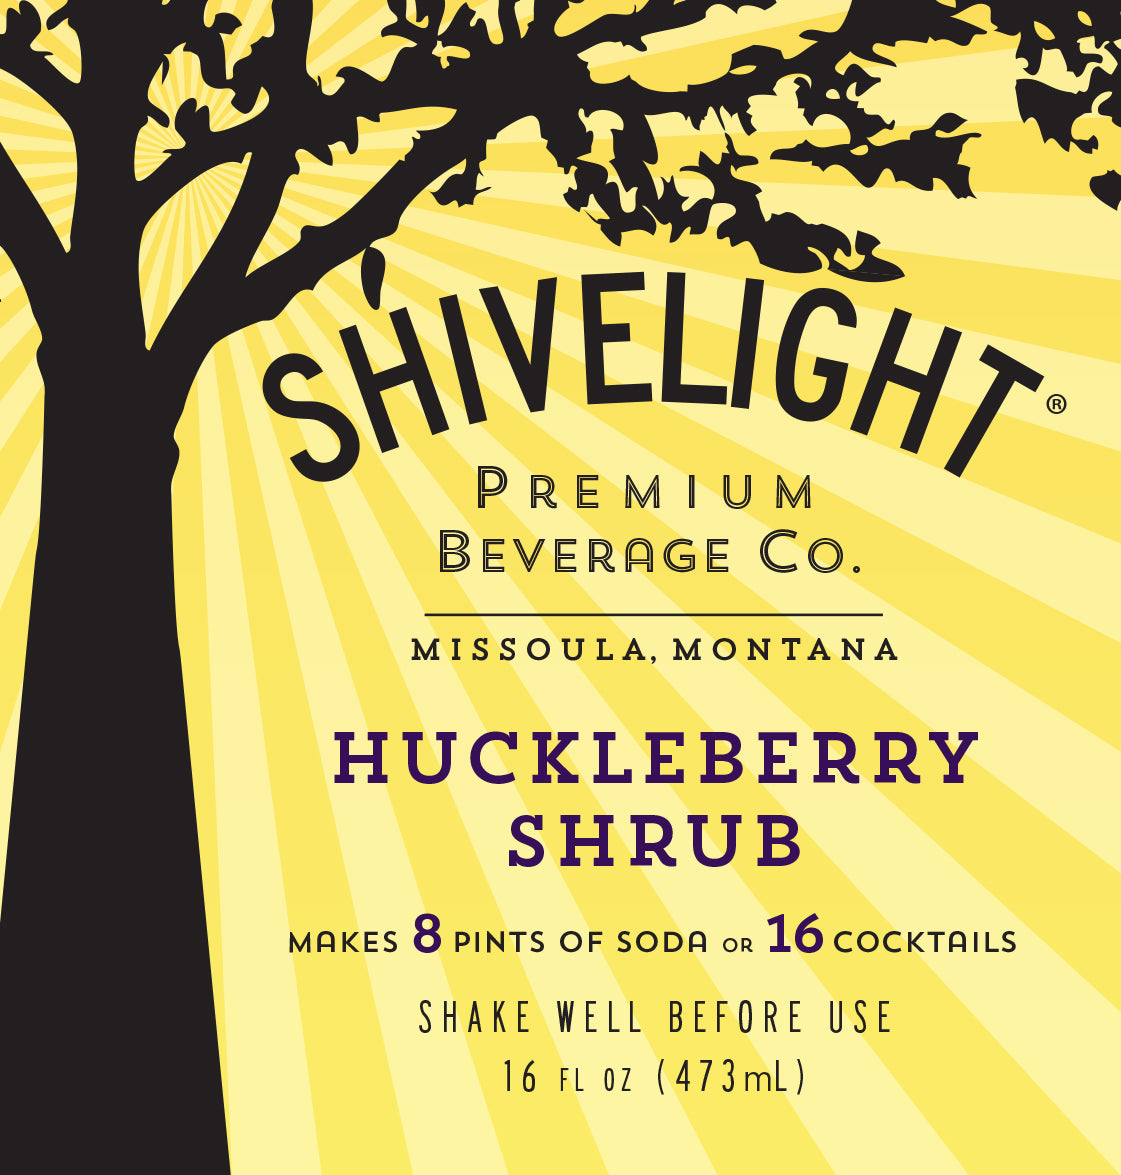 Huckleberry Shrub